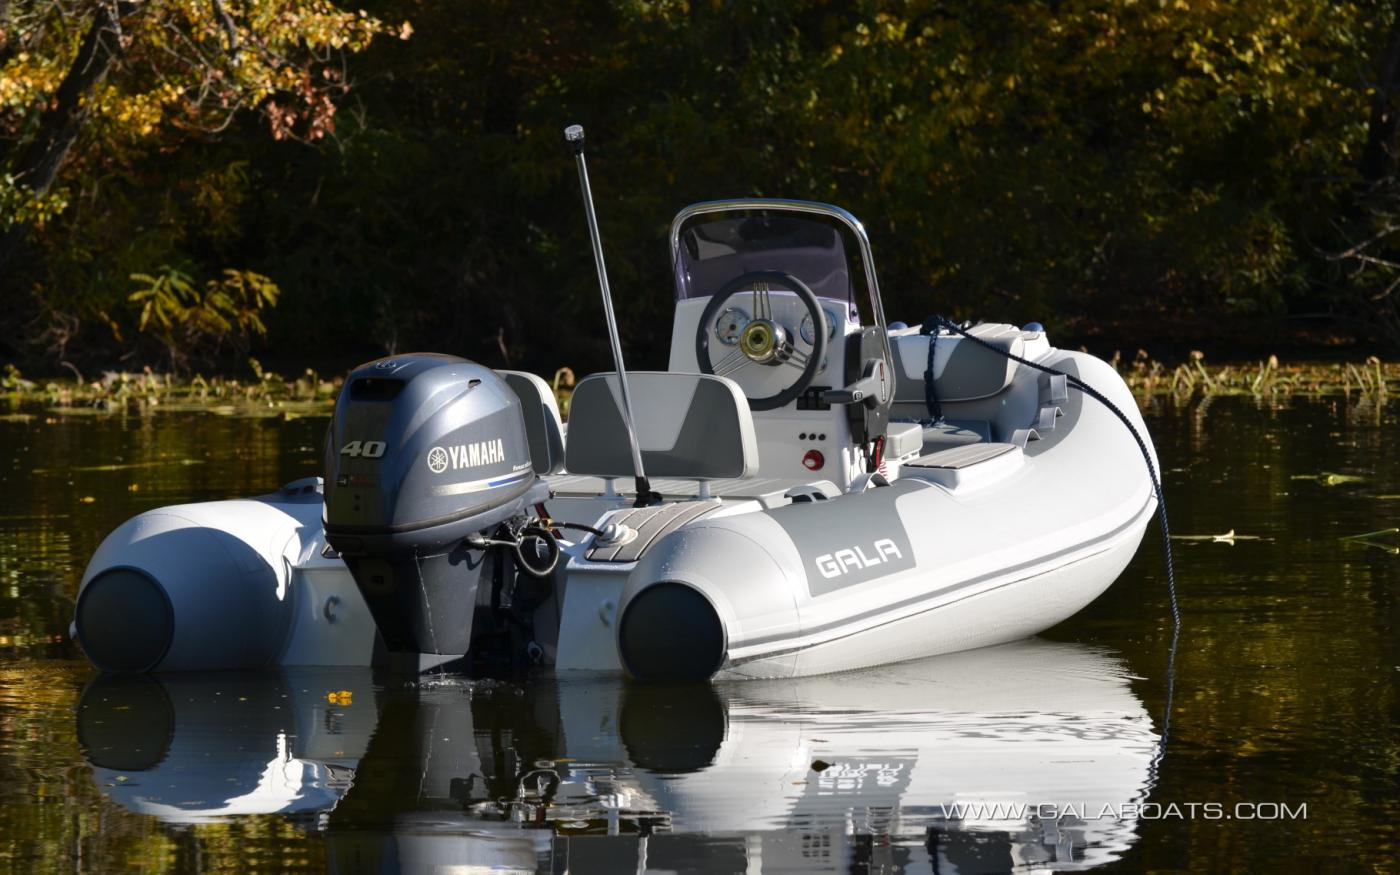 Te koop Gala Viking V360 Rubberboten | Bomert Watersport